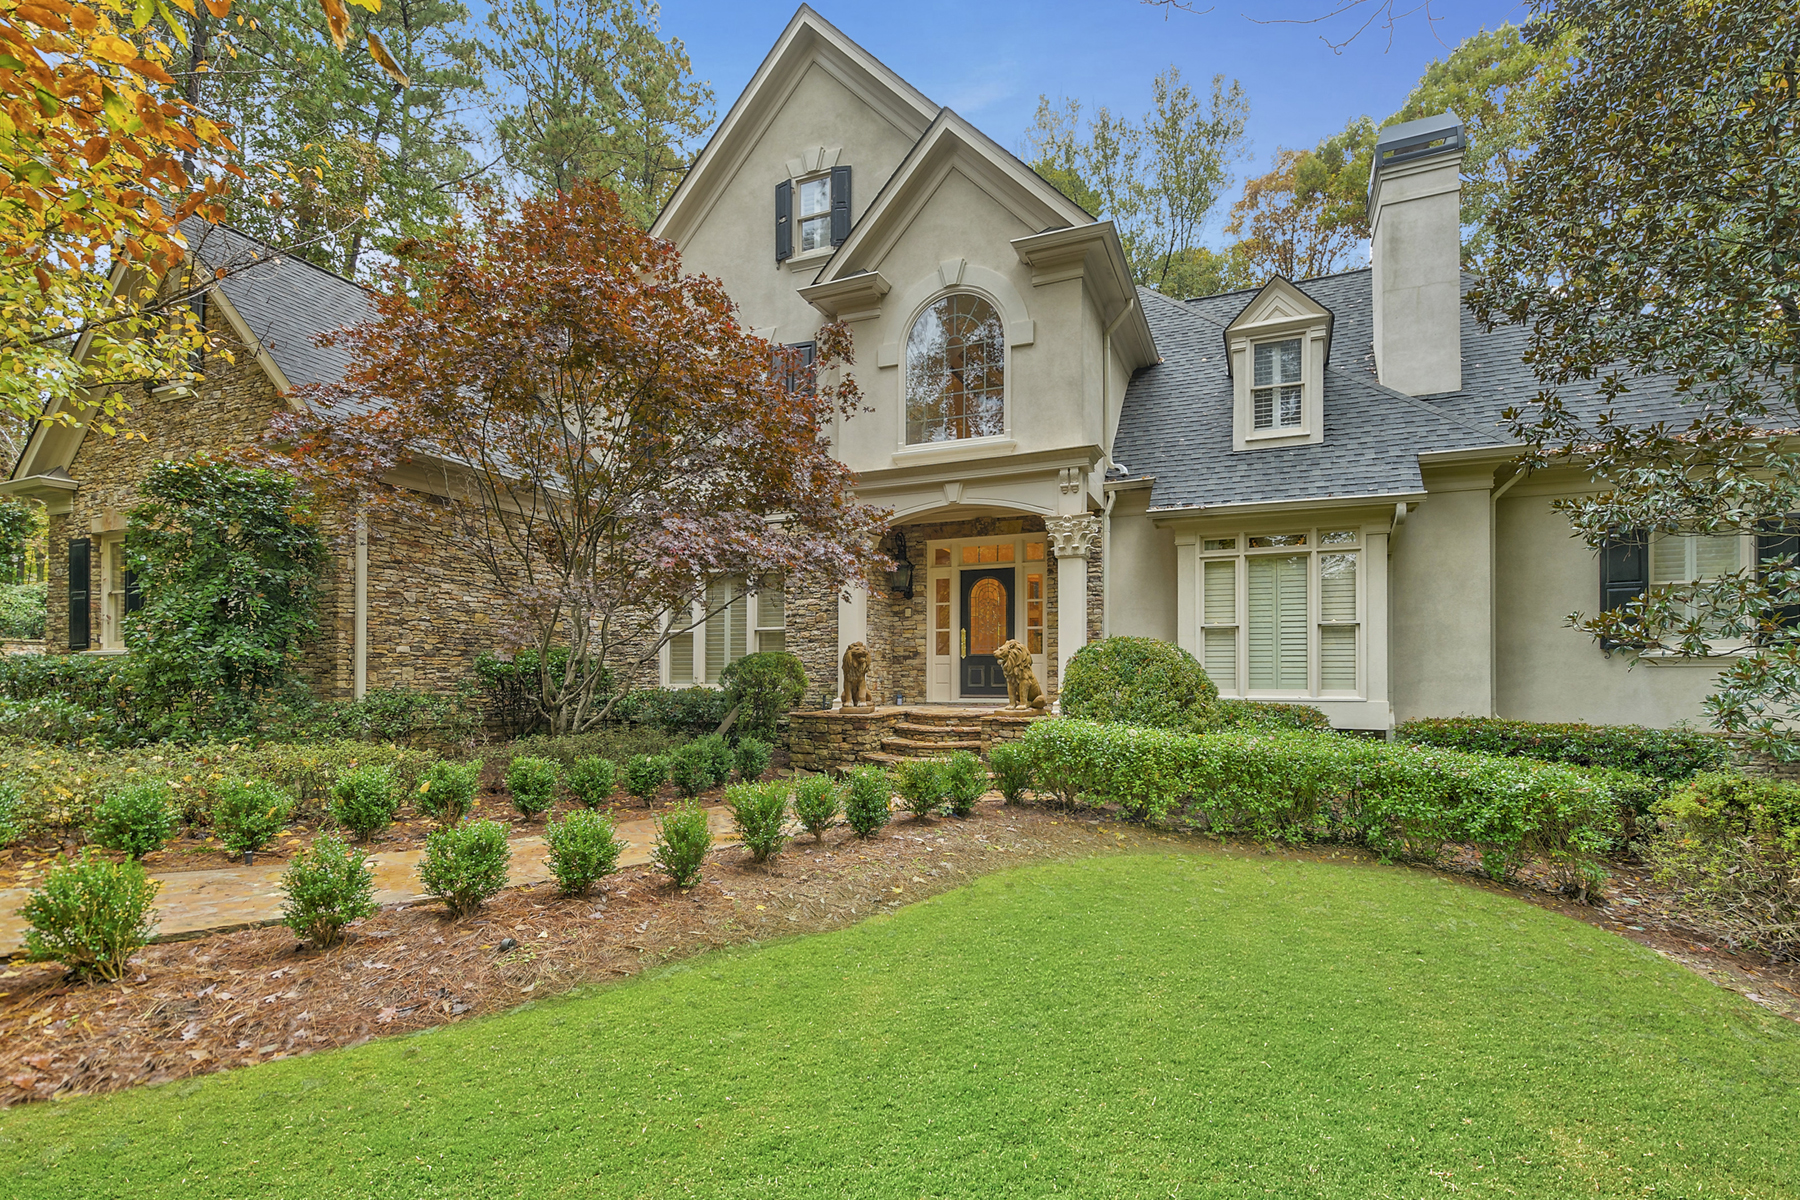 Single Family Home for Sale at Southern Estate Atop An Acre Plus Lot Directly On The Golf Course 9250 Old Southwick Pass Alpharetta, Georgia 30022 United States